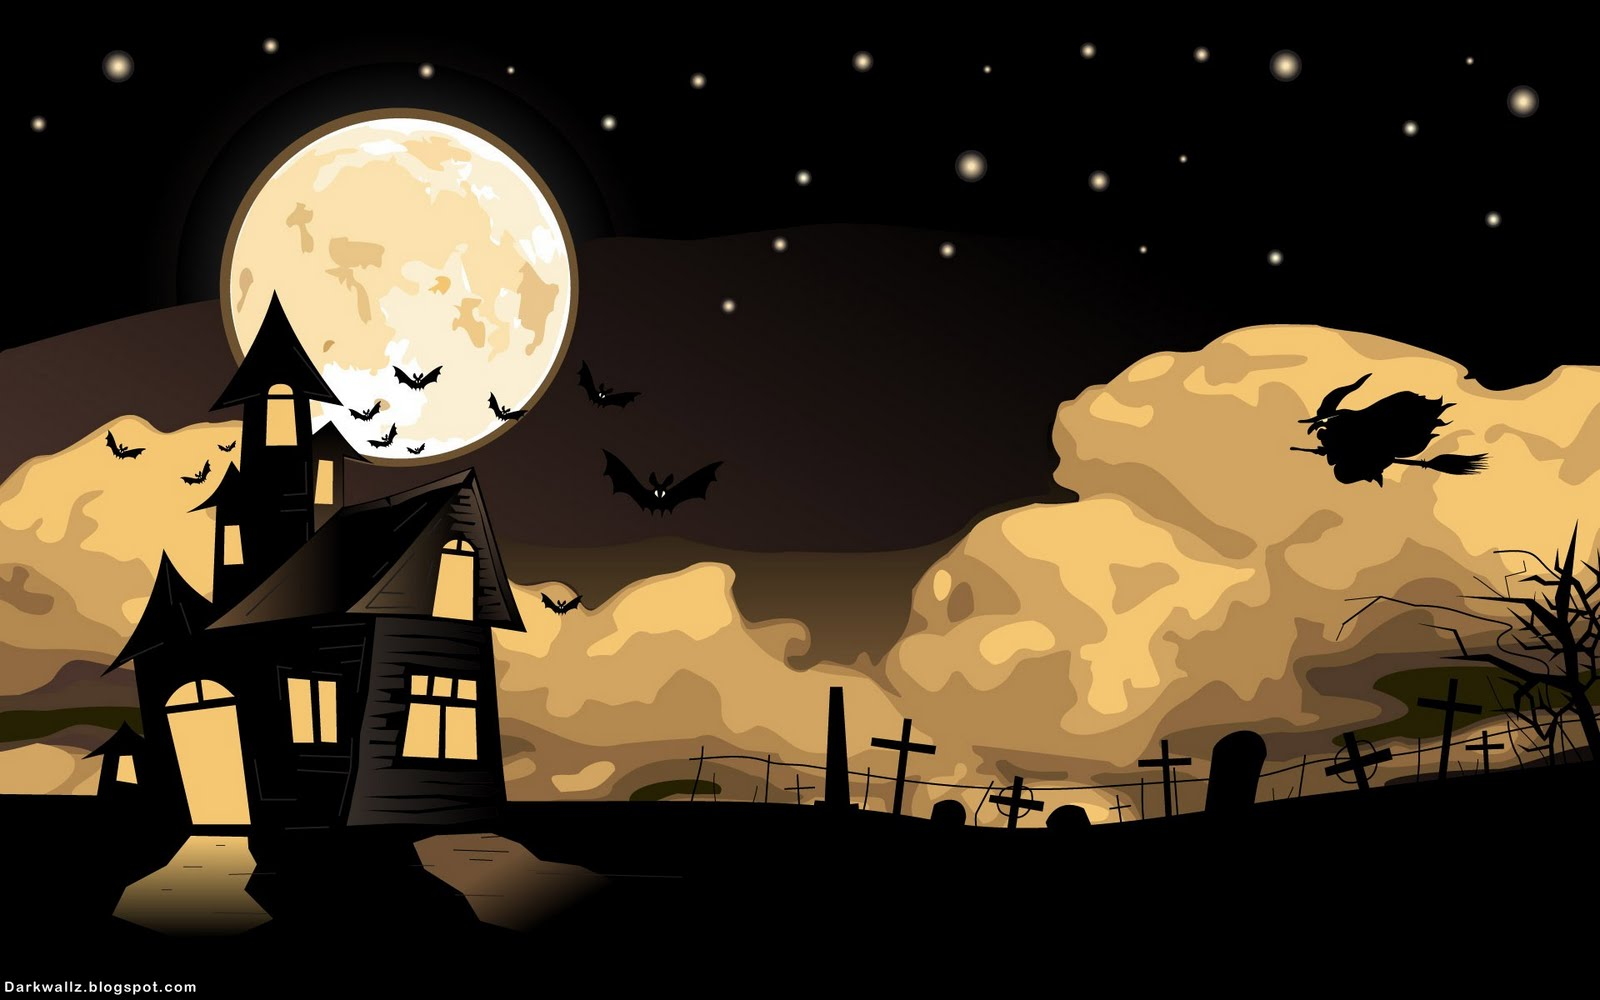 wallpaper Wallpaper Halloween Widescreen 1600x1000